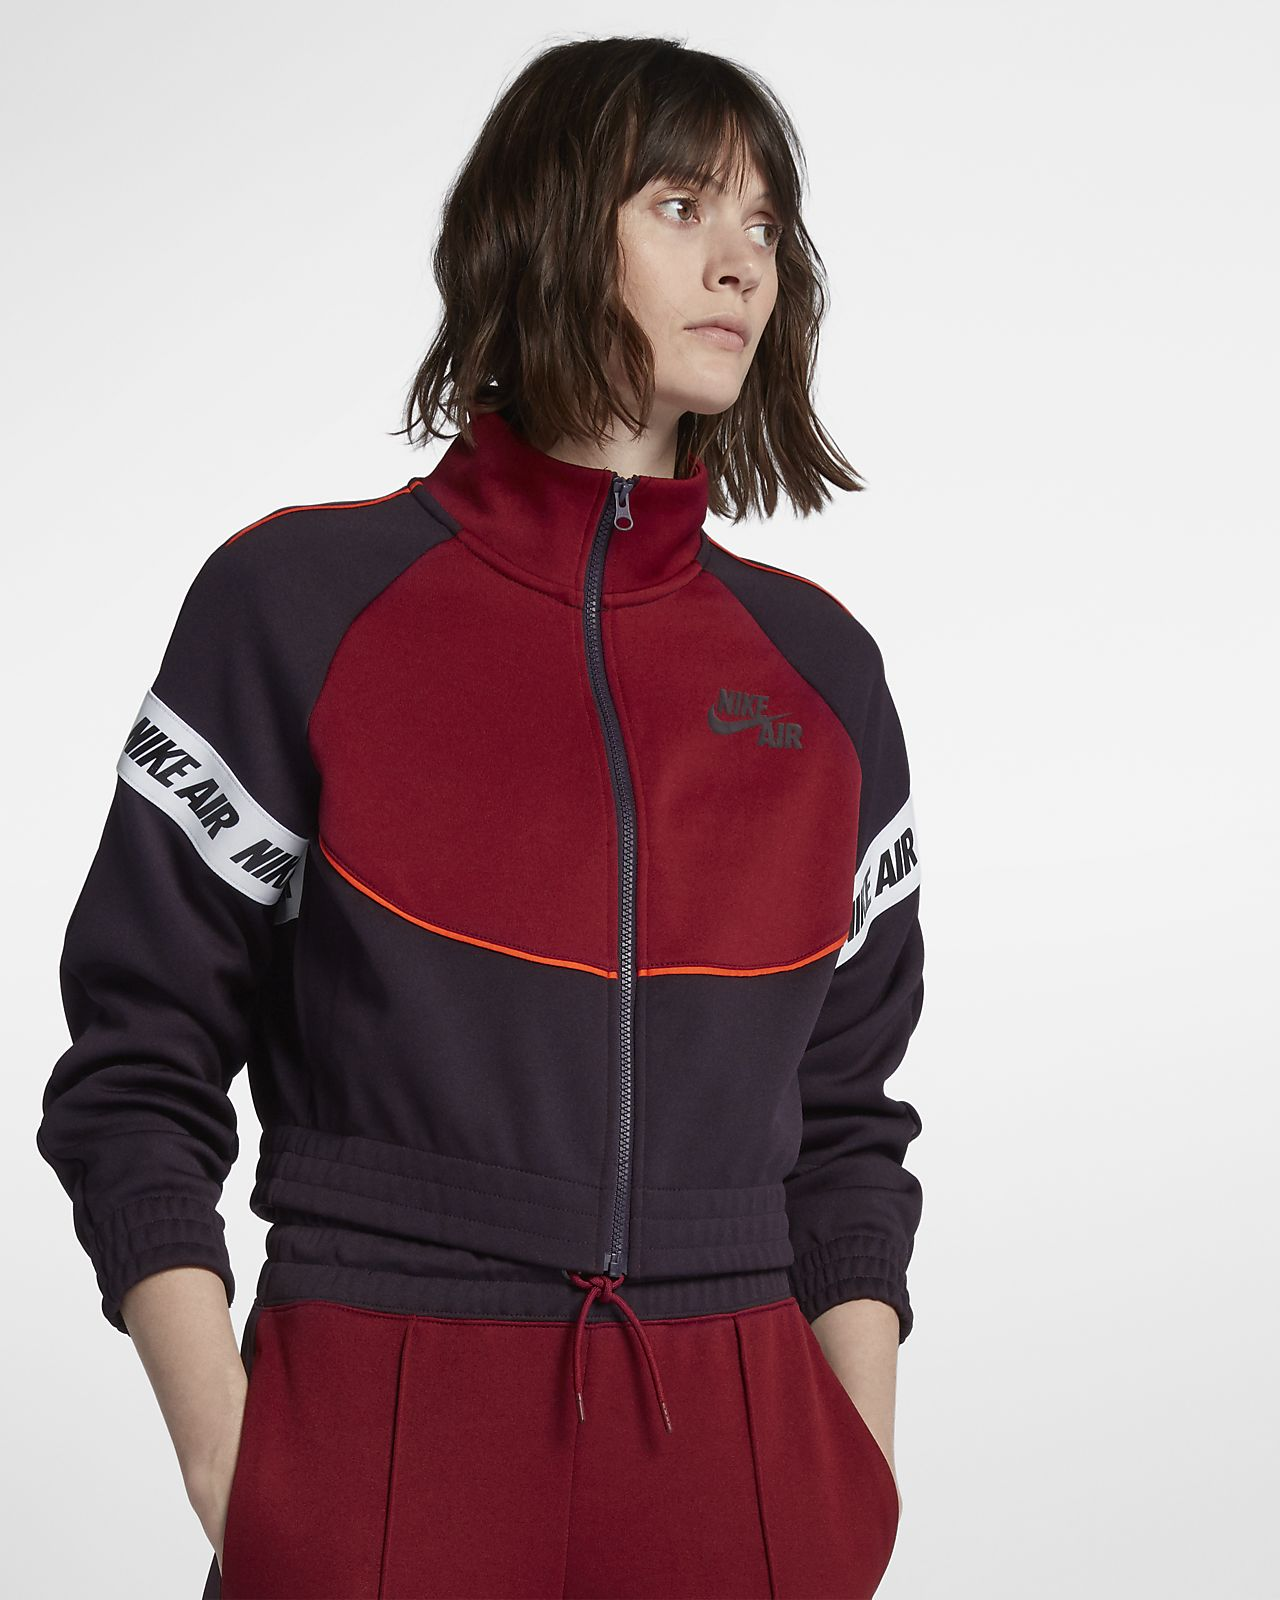 ... Veste Nike Sportswear Quilted pour Femme